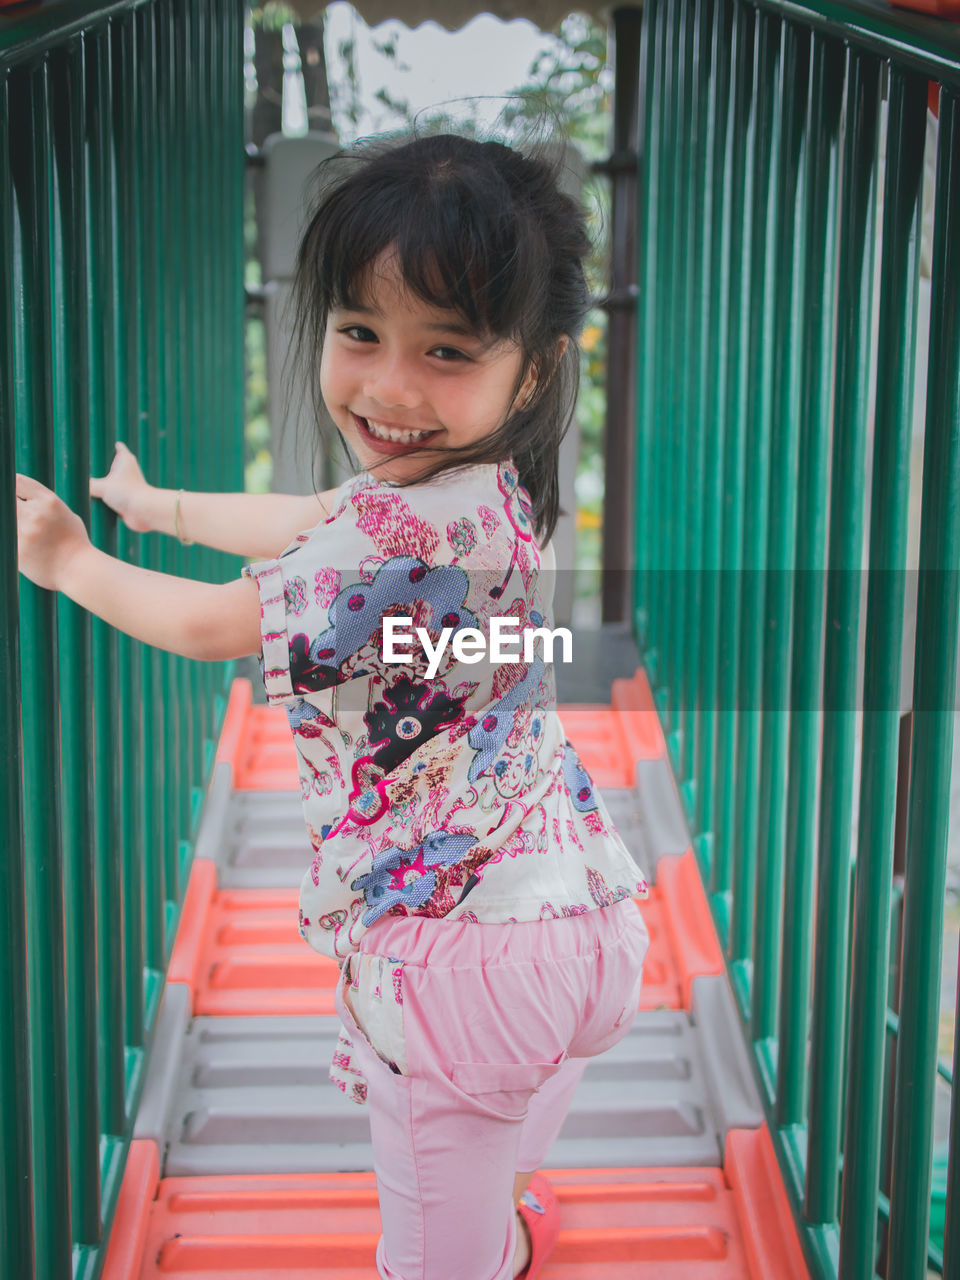 child, childhood, real people, portrait, girls, one person, women, looking at camera, females, smiling, happiness, casual clothing, lifestyles, railing, three quarter length, staircase, architecture, leisure activity, innocence, outdoors, hairstyle, human arm